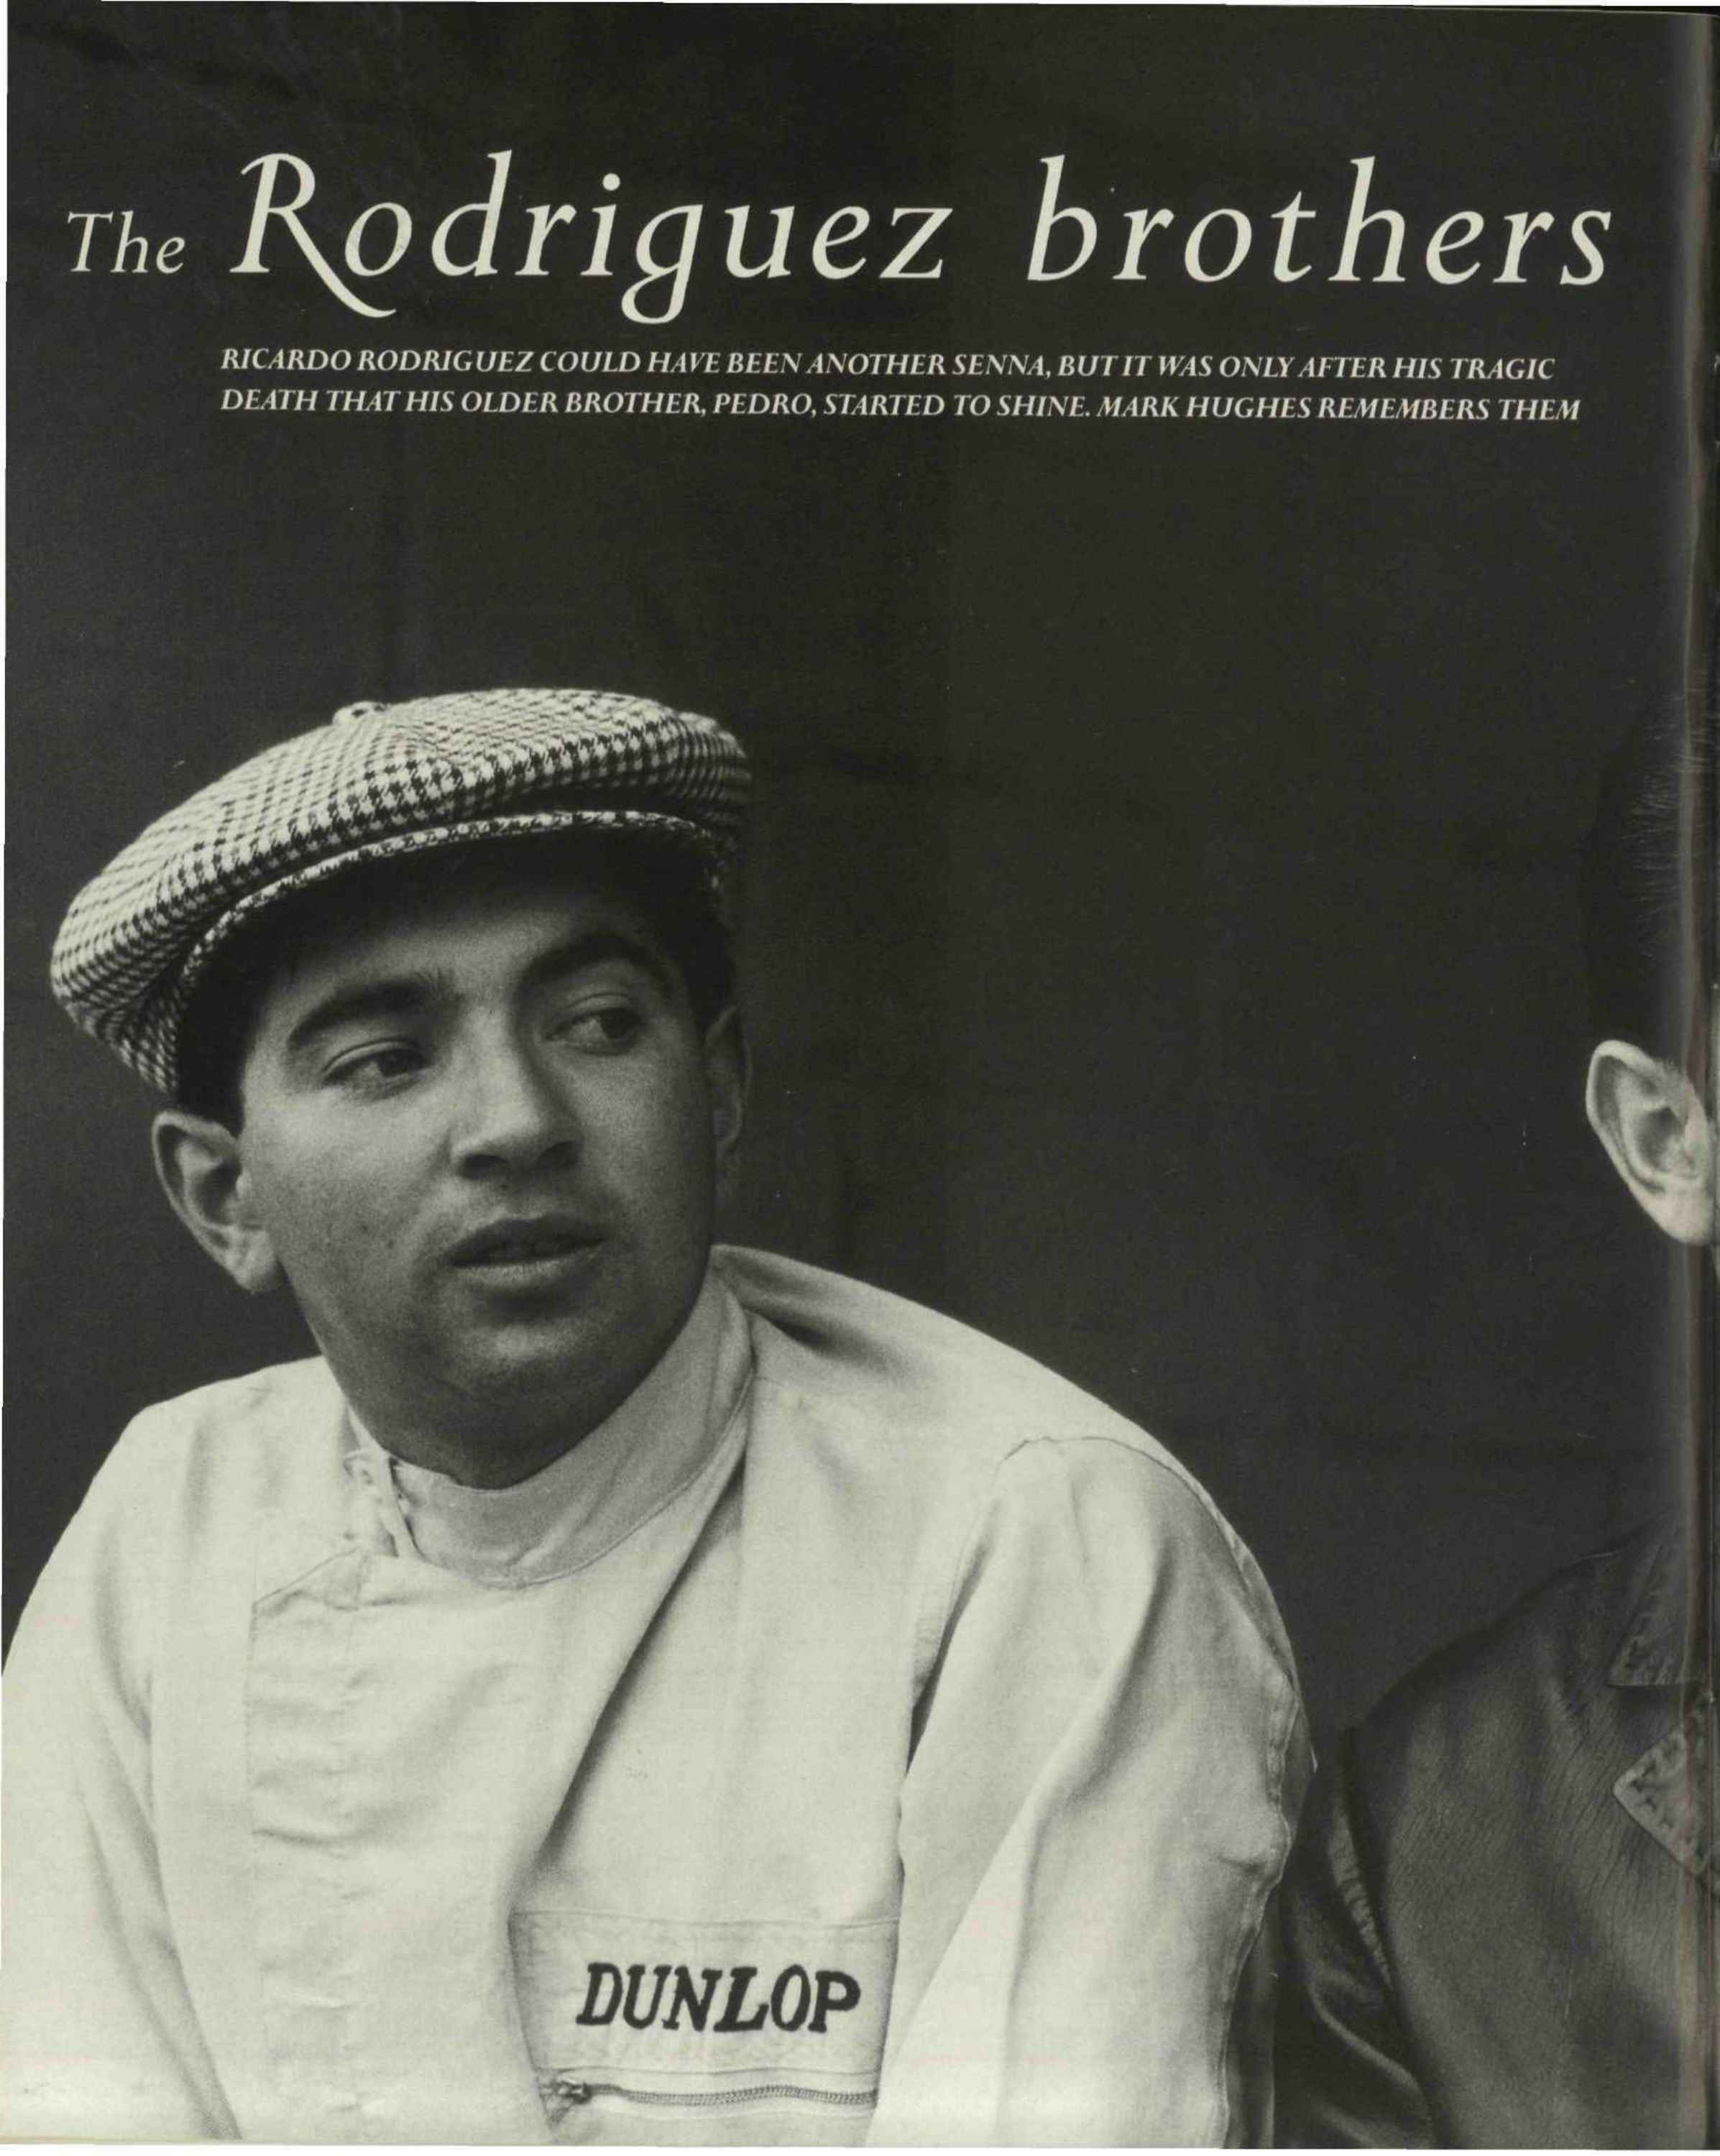 The Rodriguez brothers image